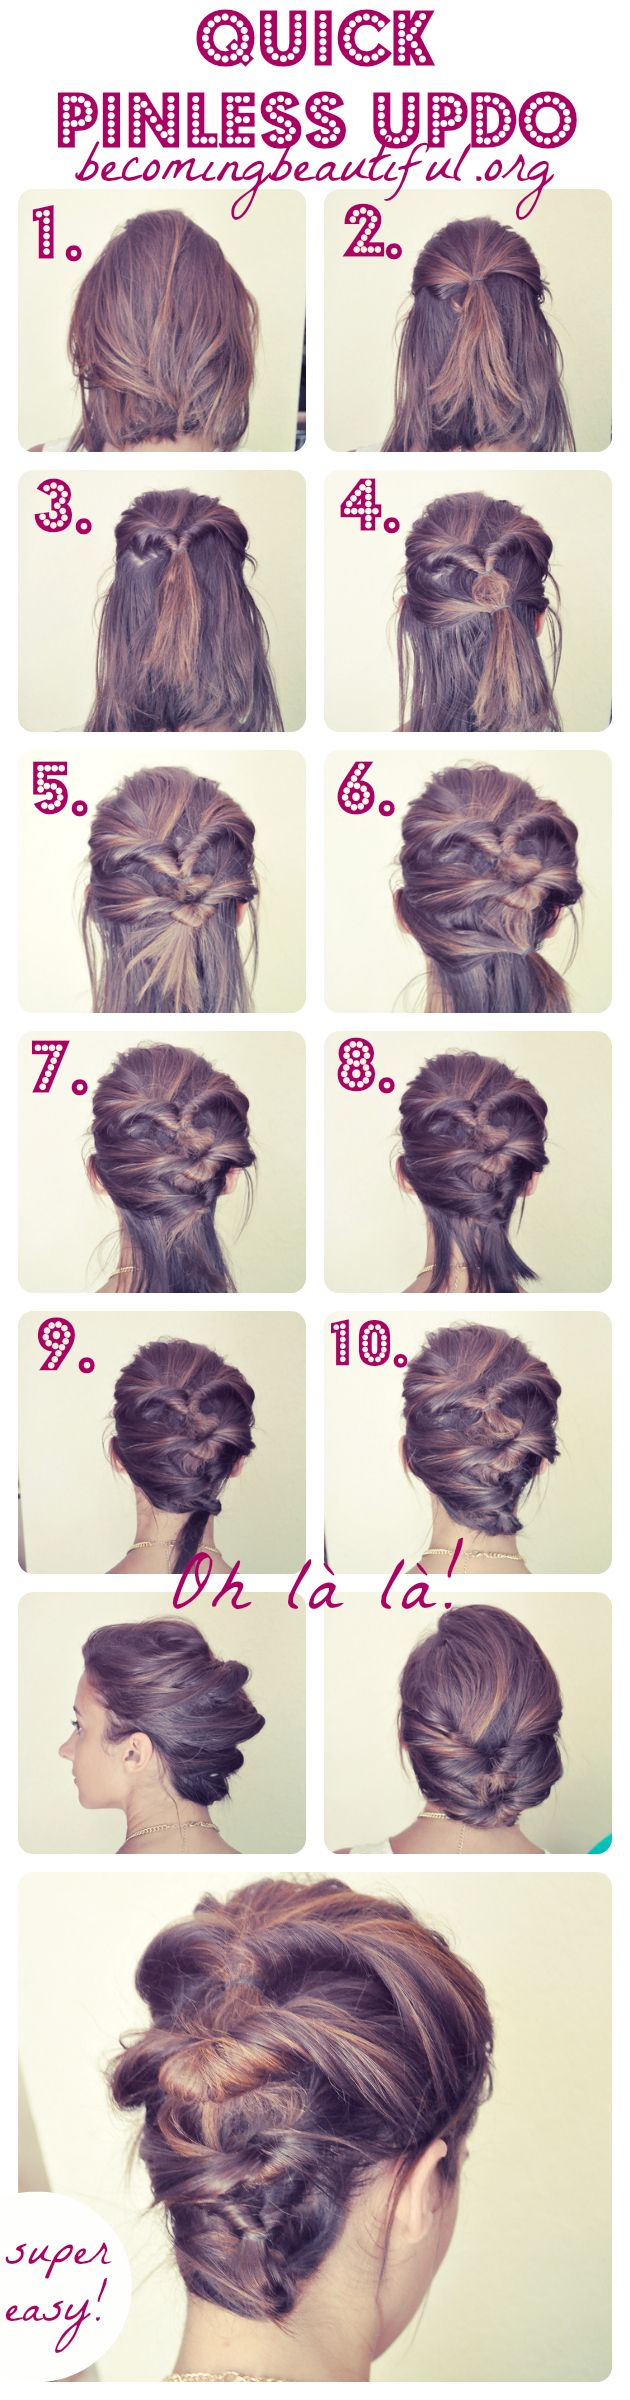 Diy Quick Pinless Updo Paige Sagach Easy Hairstyles Cute Hairstyles Easy Updo Hairstyles